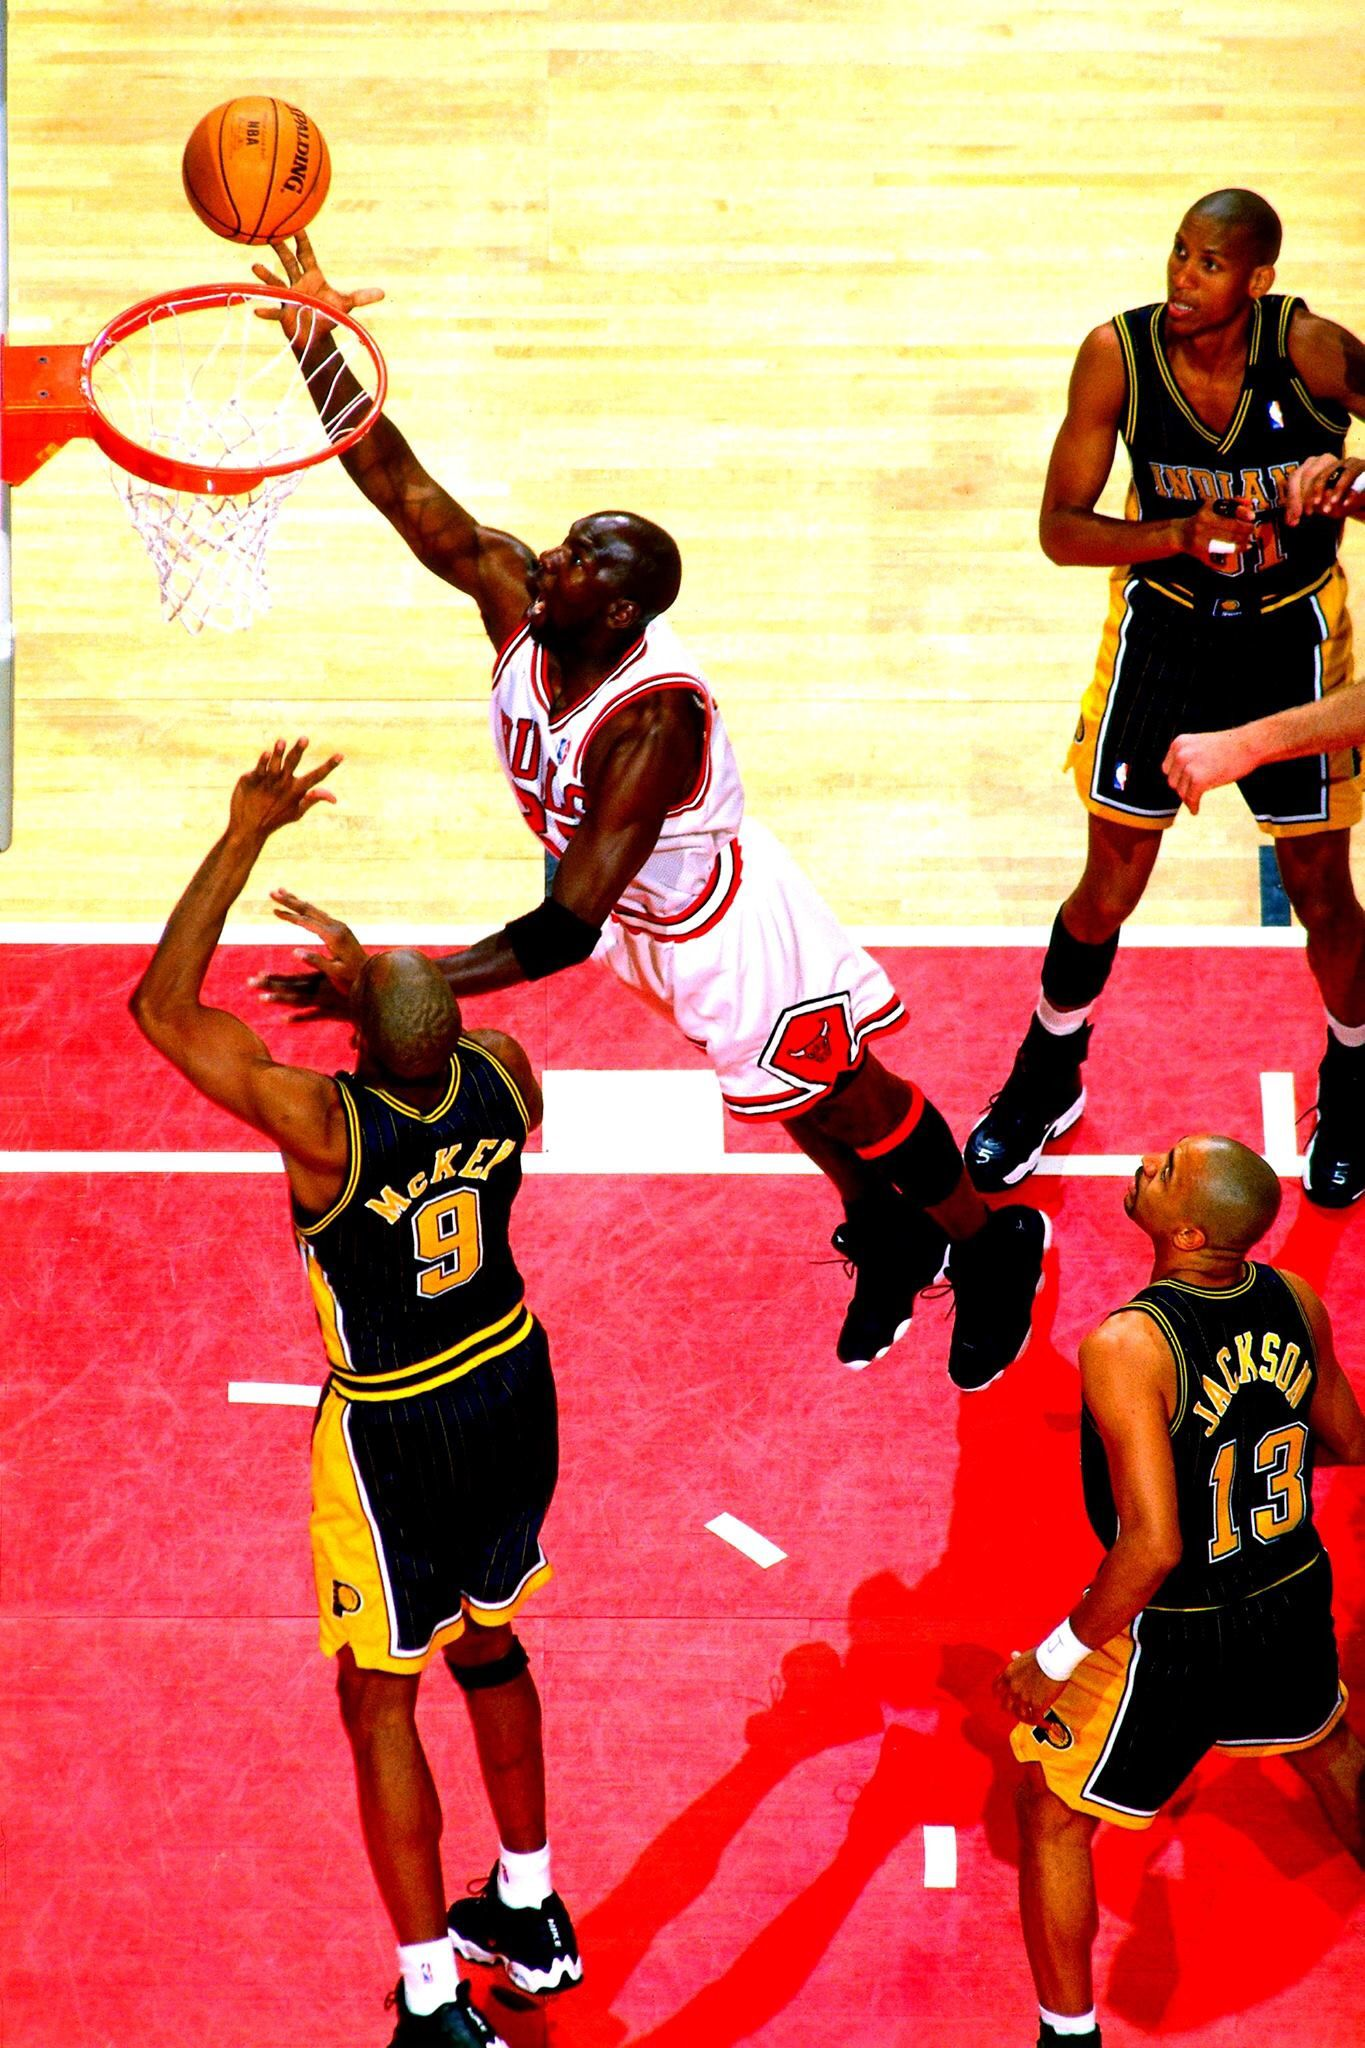 Pin free download michael jordan wallpaper 28957 hd wallpapers on - Michael Jordan Wallpaper Hd Awesome Athletes Pinterest Michael Jordan